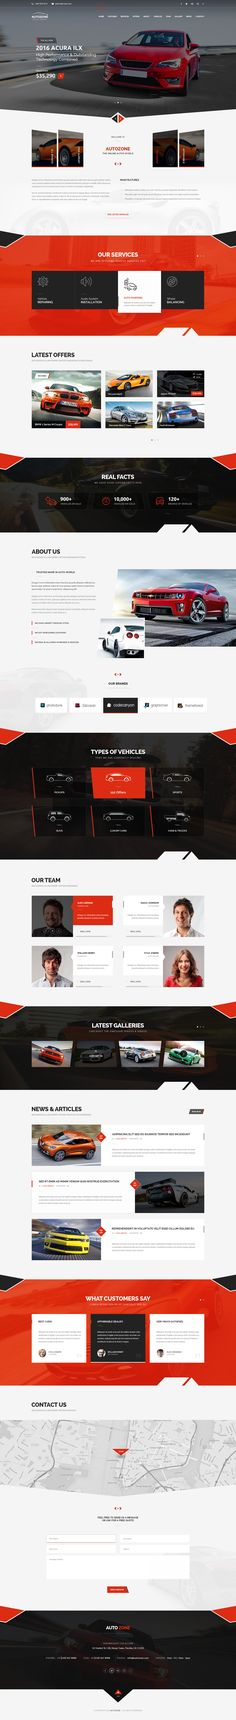 AUTOZONE Car Dealer PSD Theme - Download theme here : http://themeforest.net/item/autozone-car-dealer-psd-theme/12895577?ref=pxcr